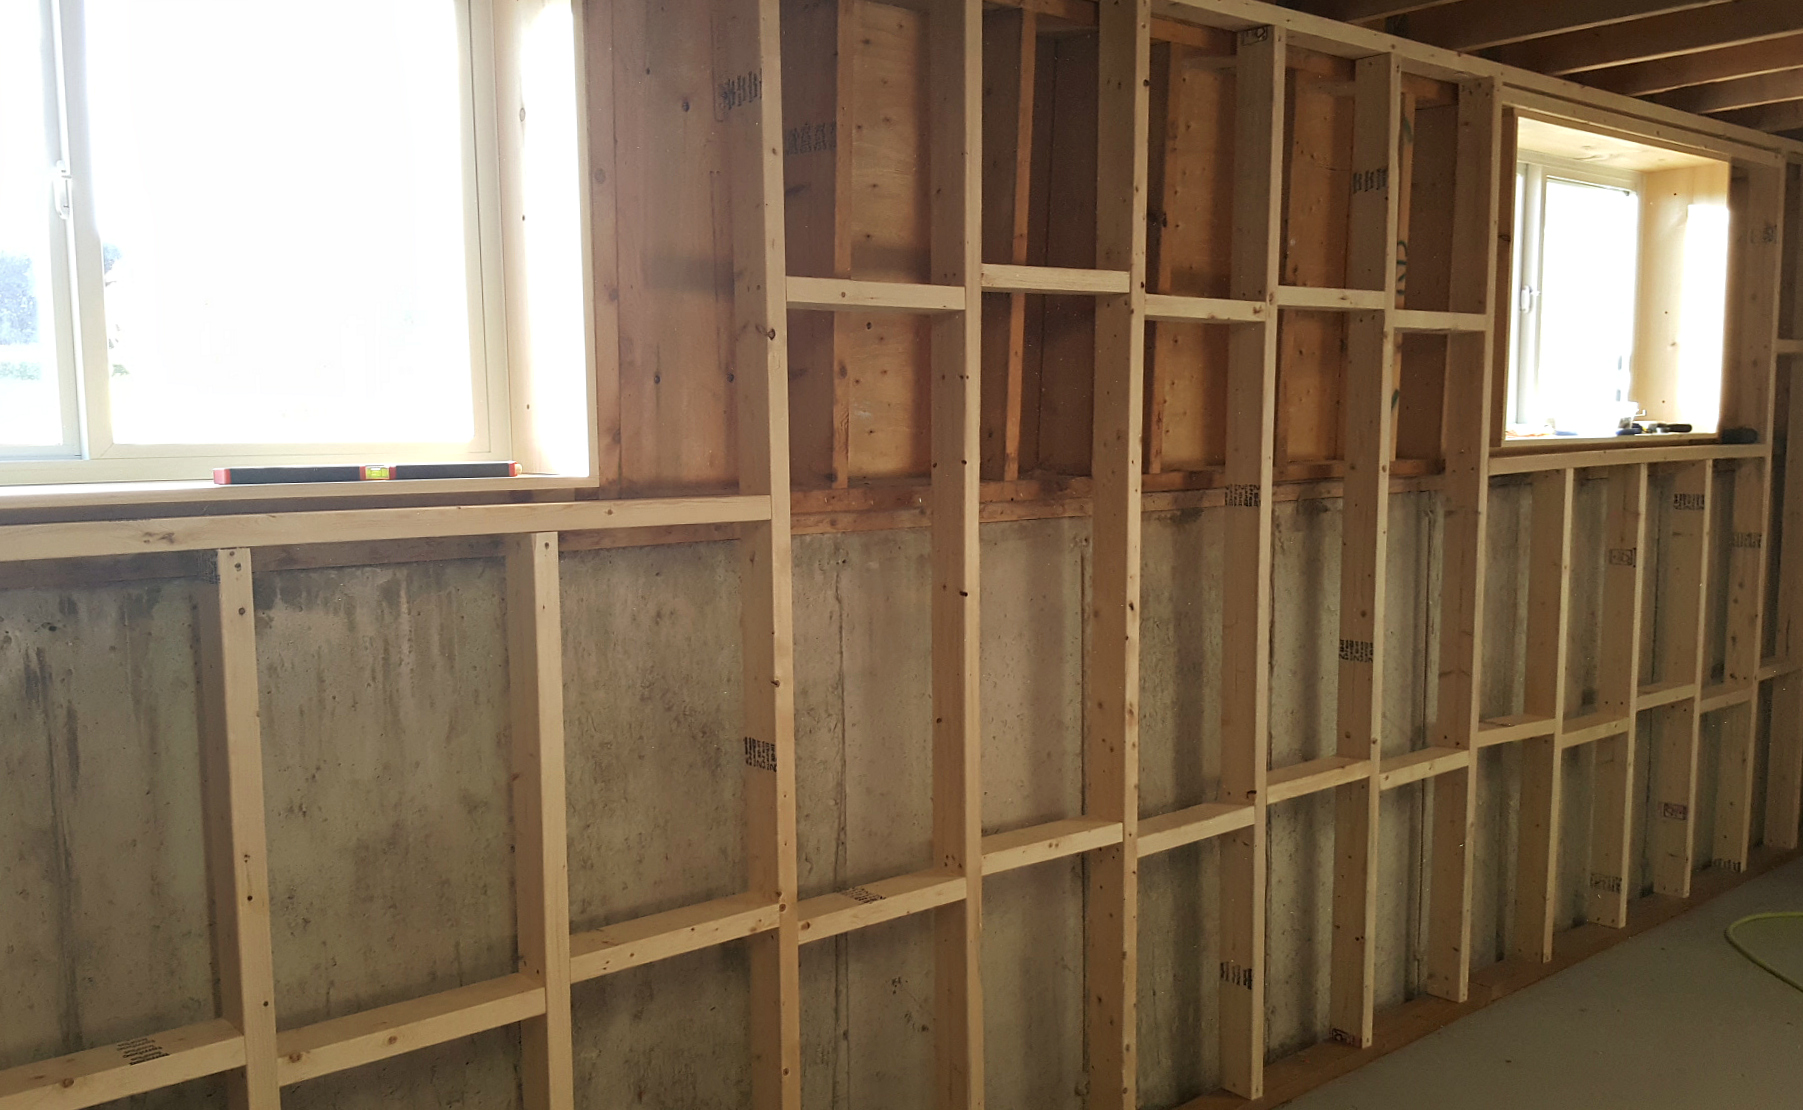 Insulating Basement Block Walls : Turtles and tails basement wall framing insulating